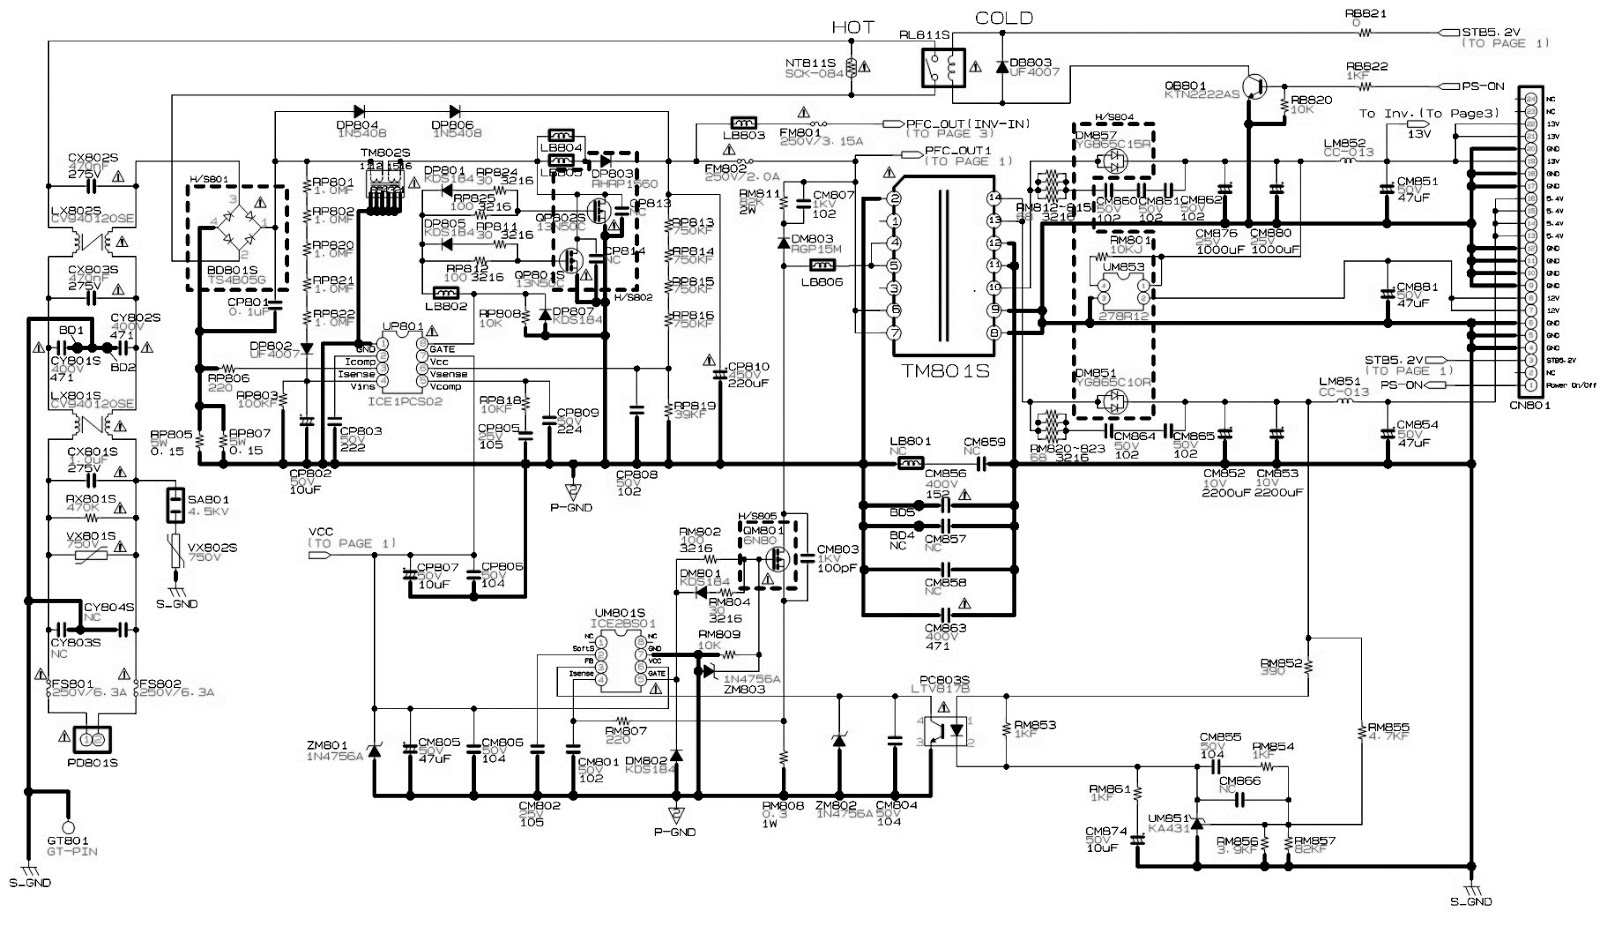 [DIAGRAM] Samsung Lcd Tv Wiring Diagrams Pictures FULL